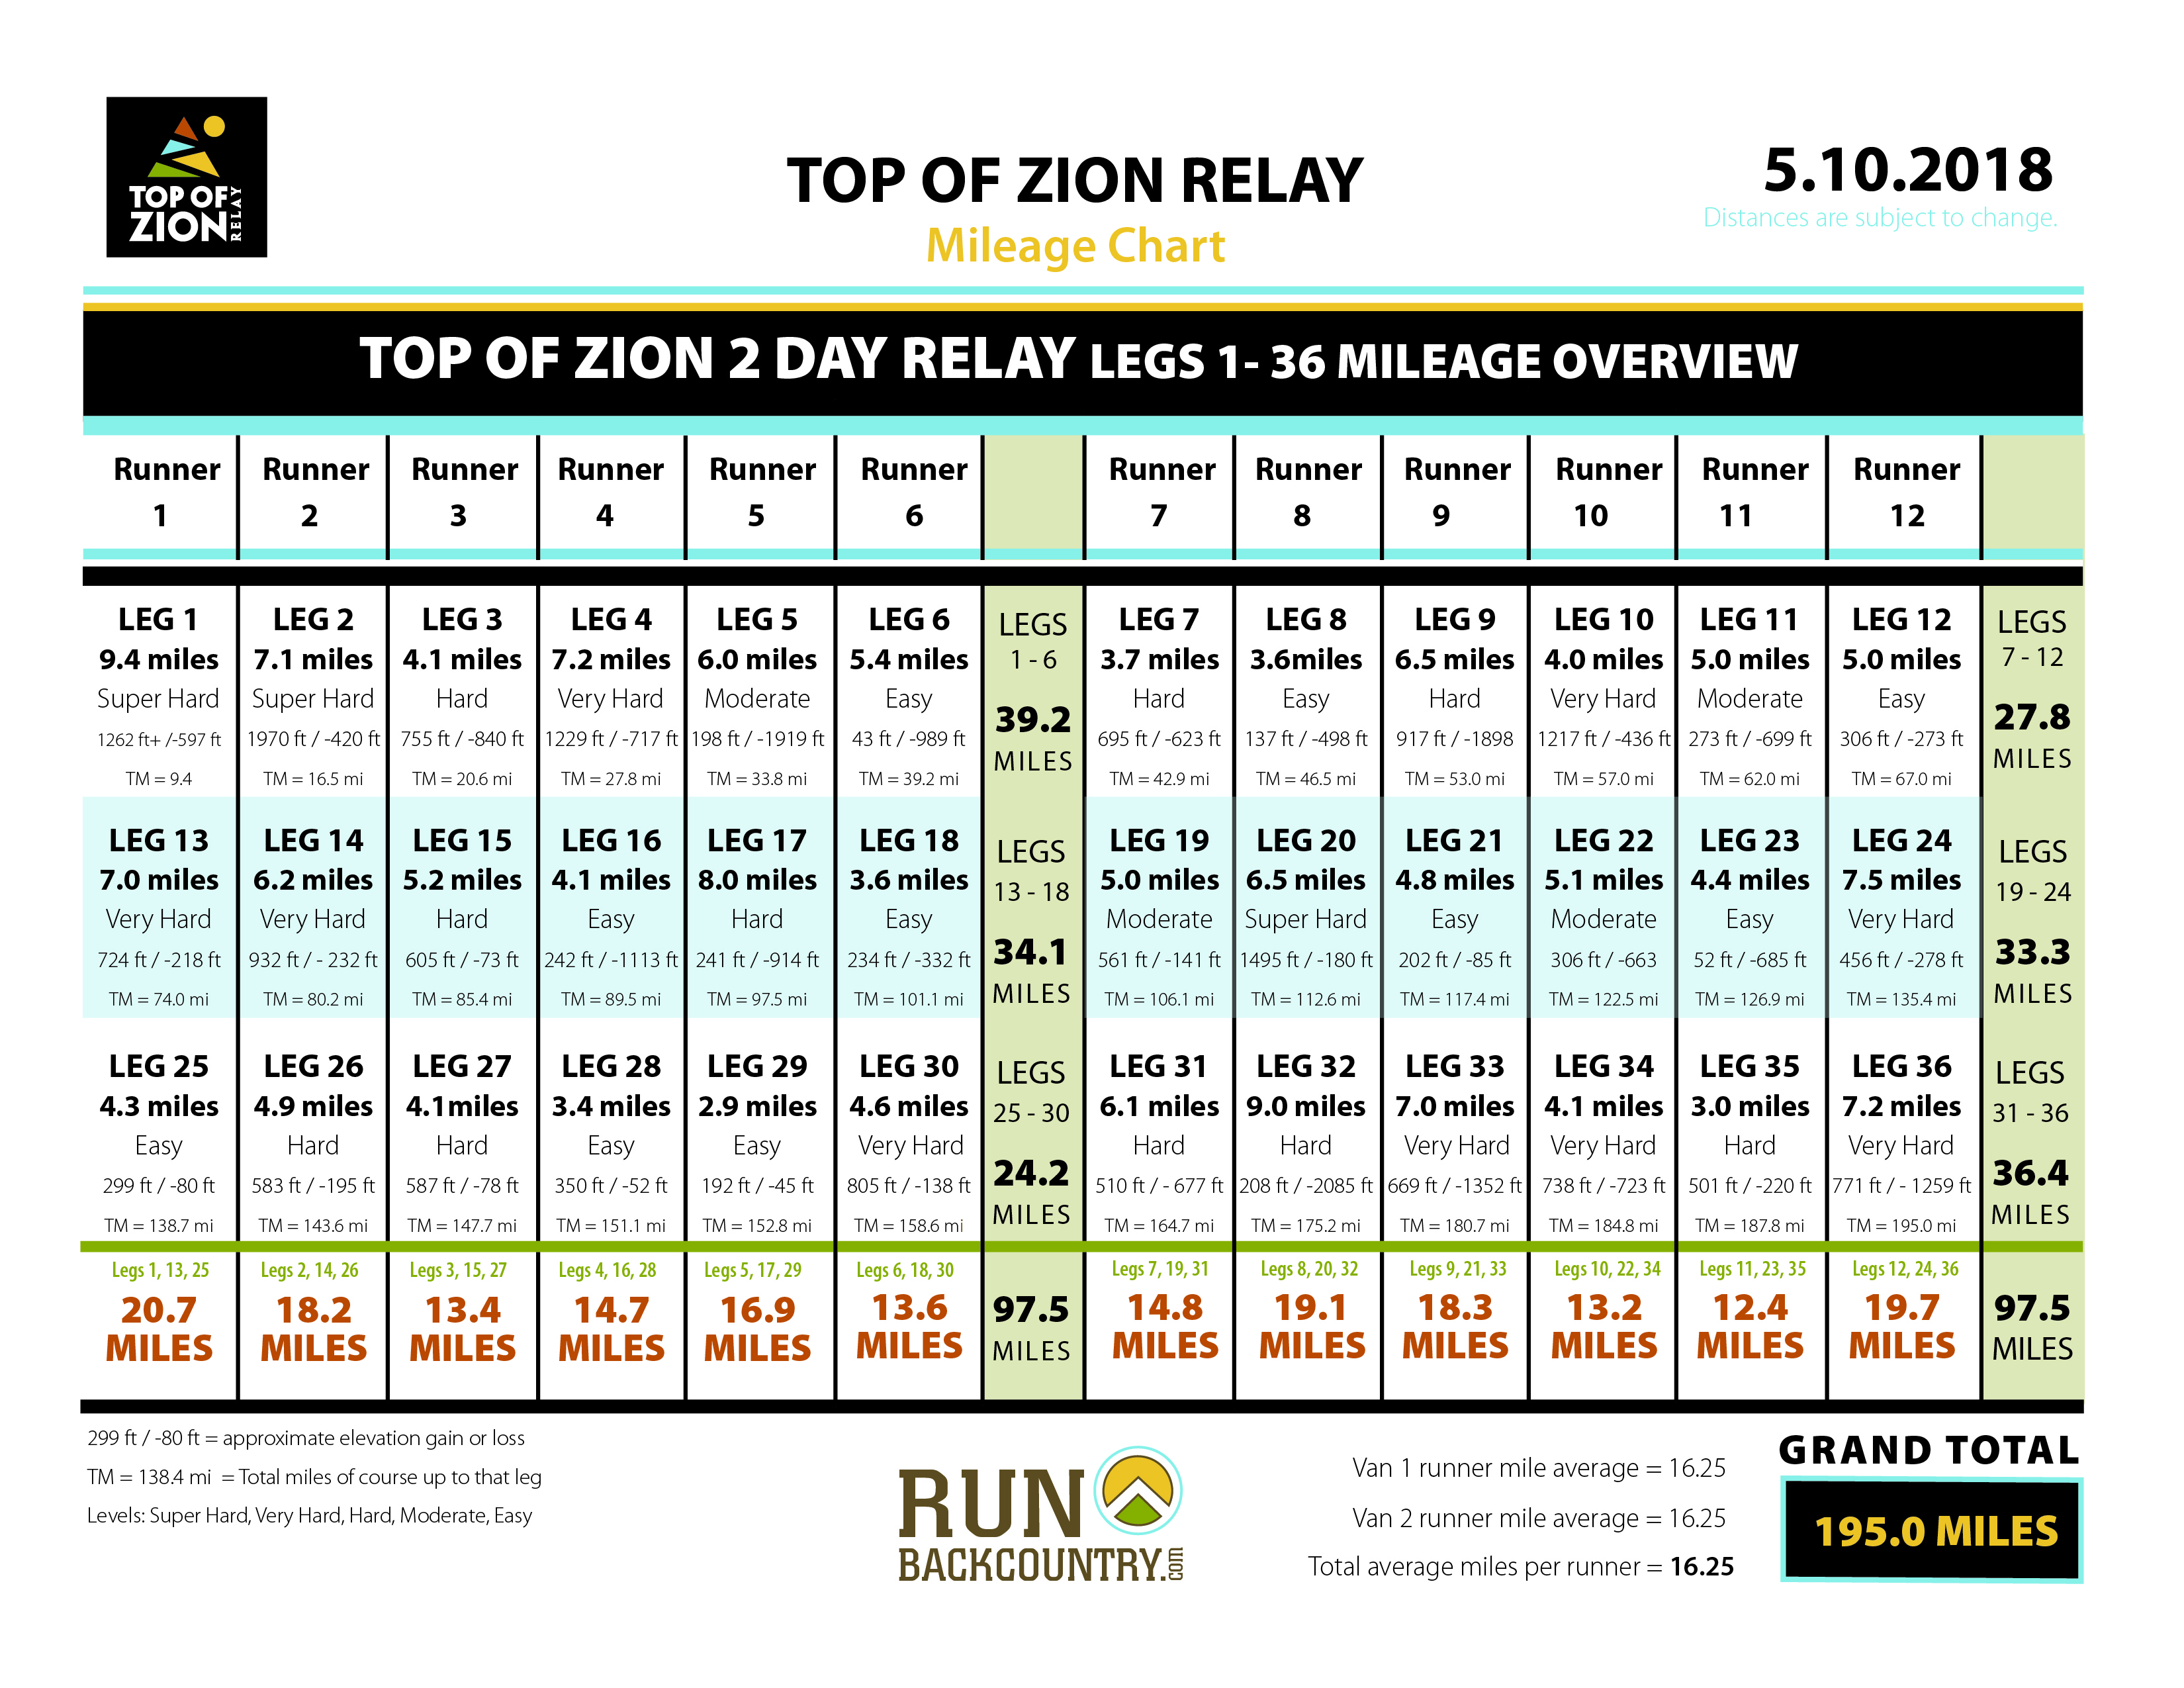 Mileage charts top of zion relay